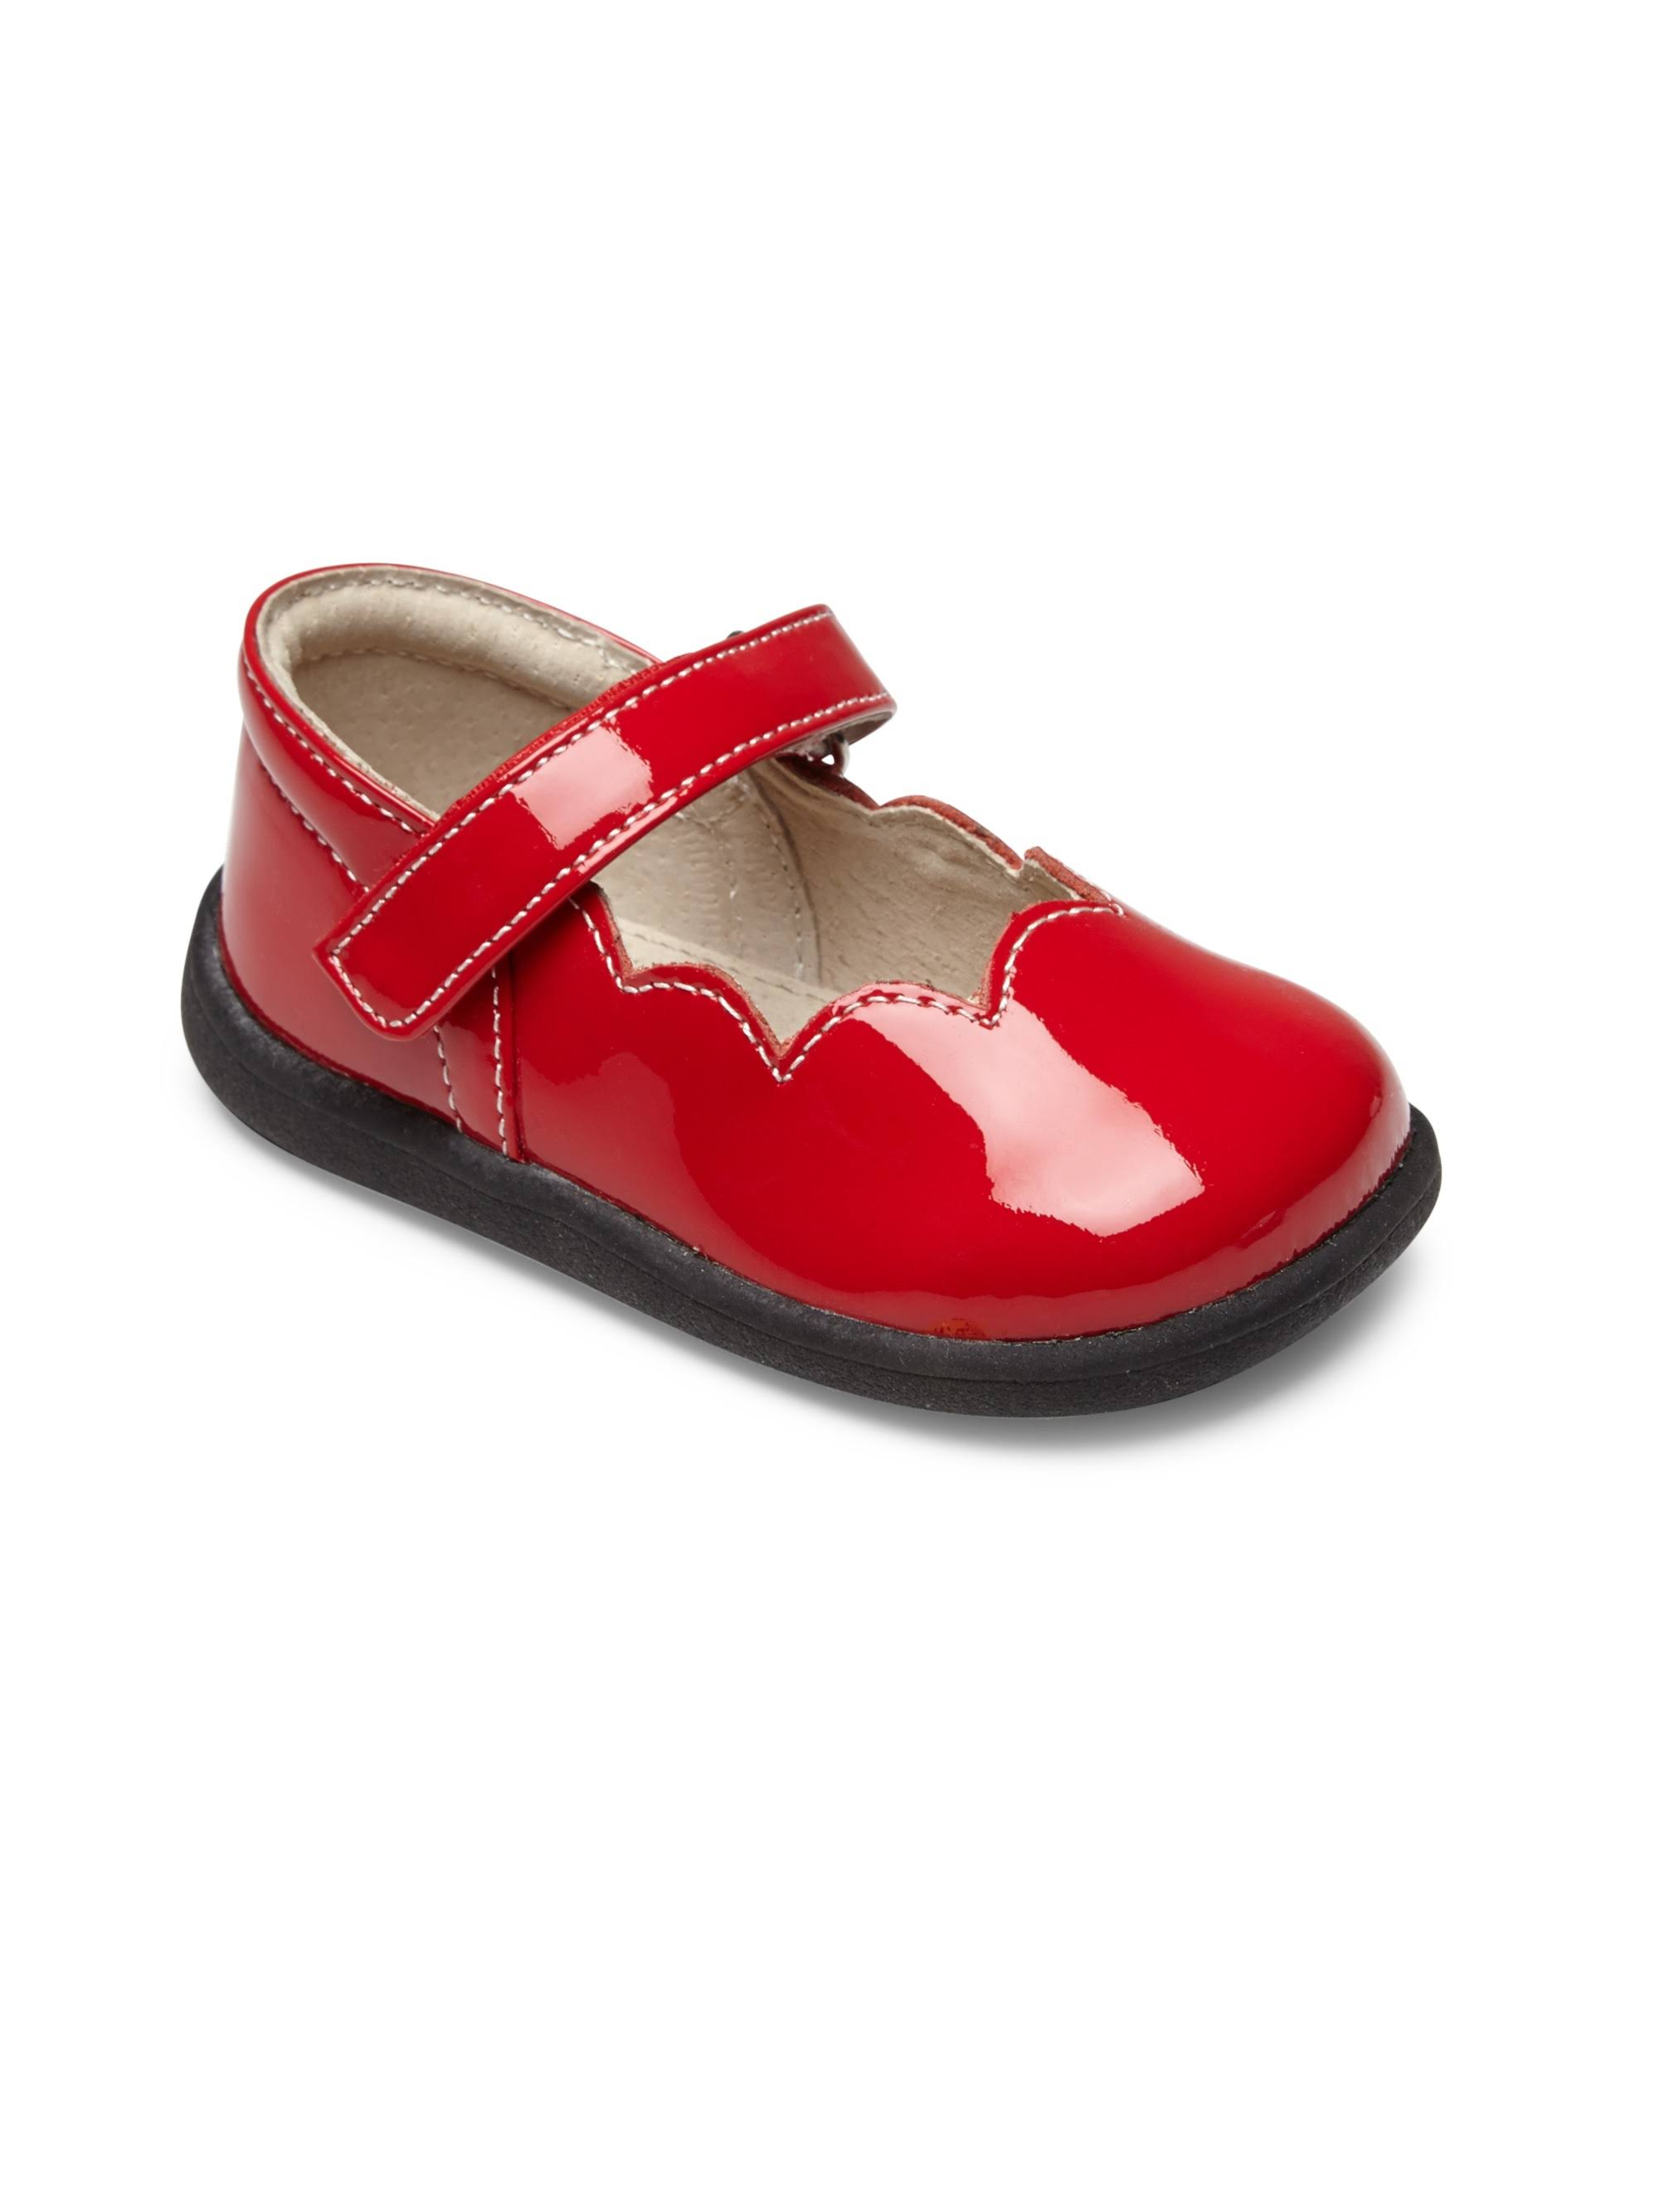 See Kai Run Baby's & Toddler's Scalloped Patent Leather Mary Janes - Red 9 (Toddler)